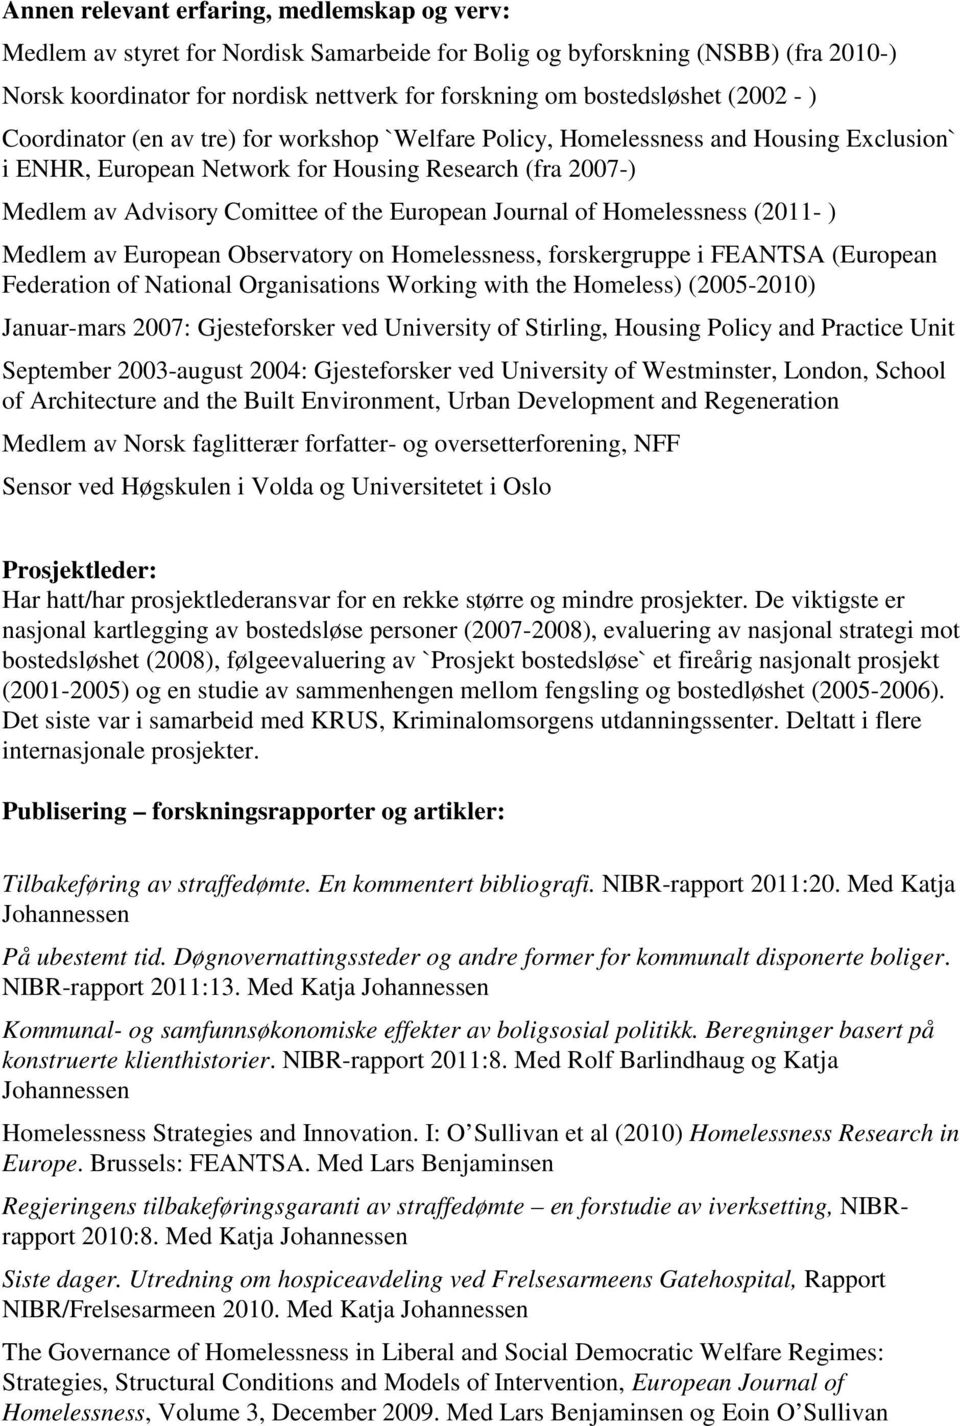 European Journal of Homelessness (2011- ) Medlem av European Observatory on Homelessness, forskergruppe i FEANTSA (European Federation of National Organisations Working with the Homeless) (2005-2010)